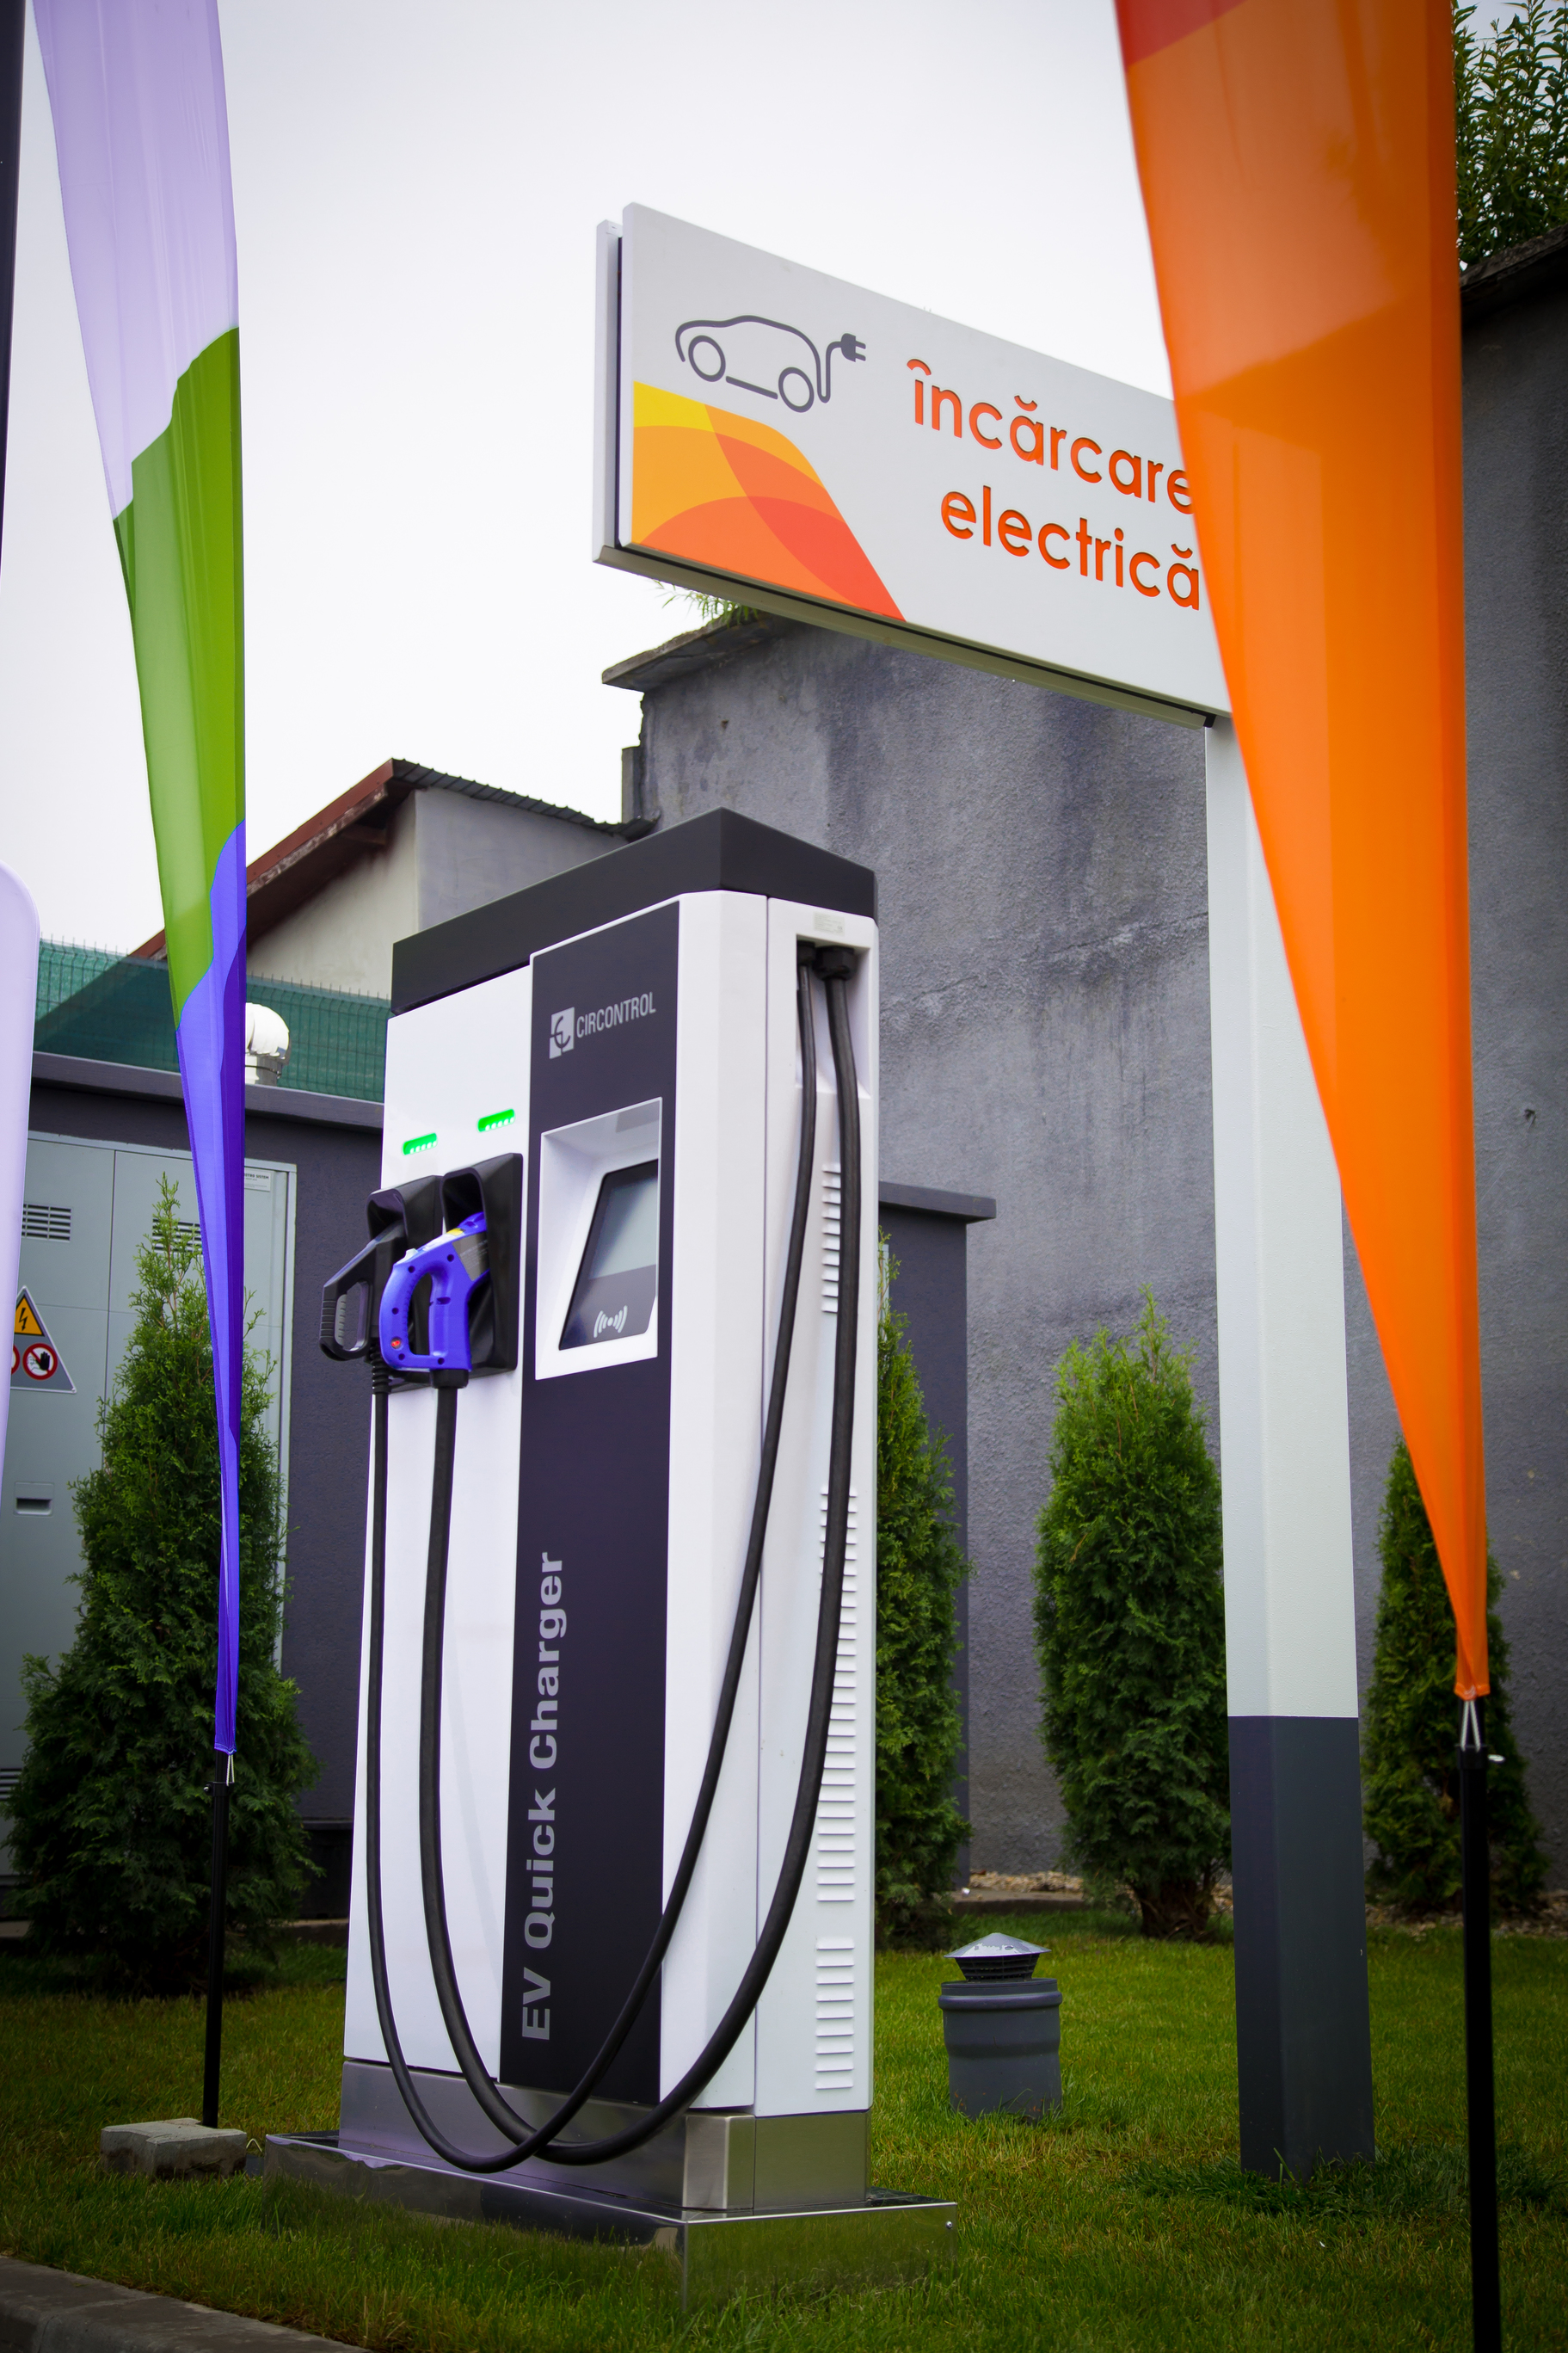 Romania's Rompetrol to invest $10 mln in hybrid gas stations by end-2017